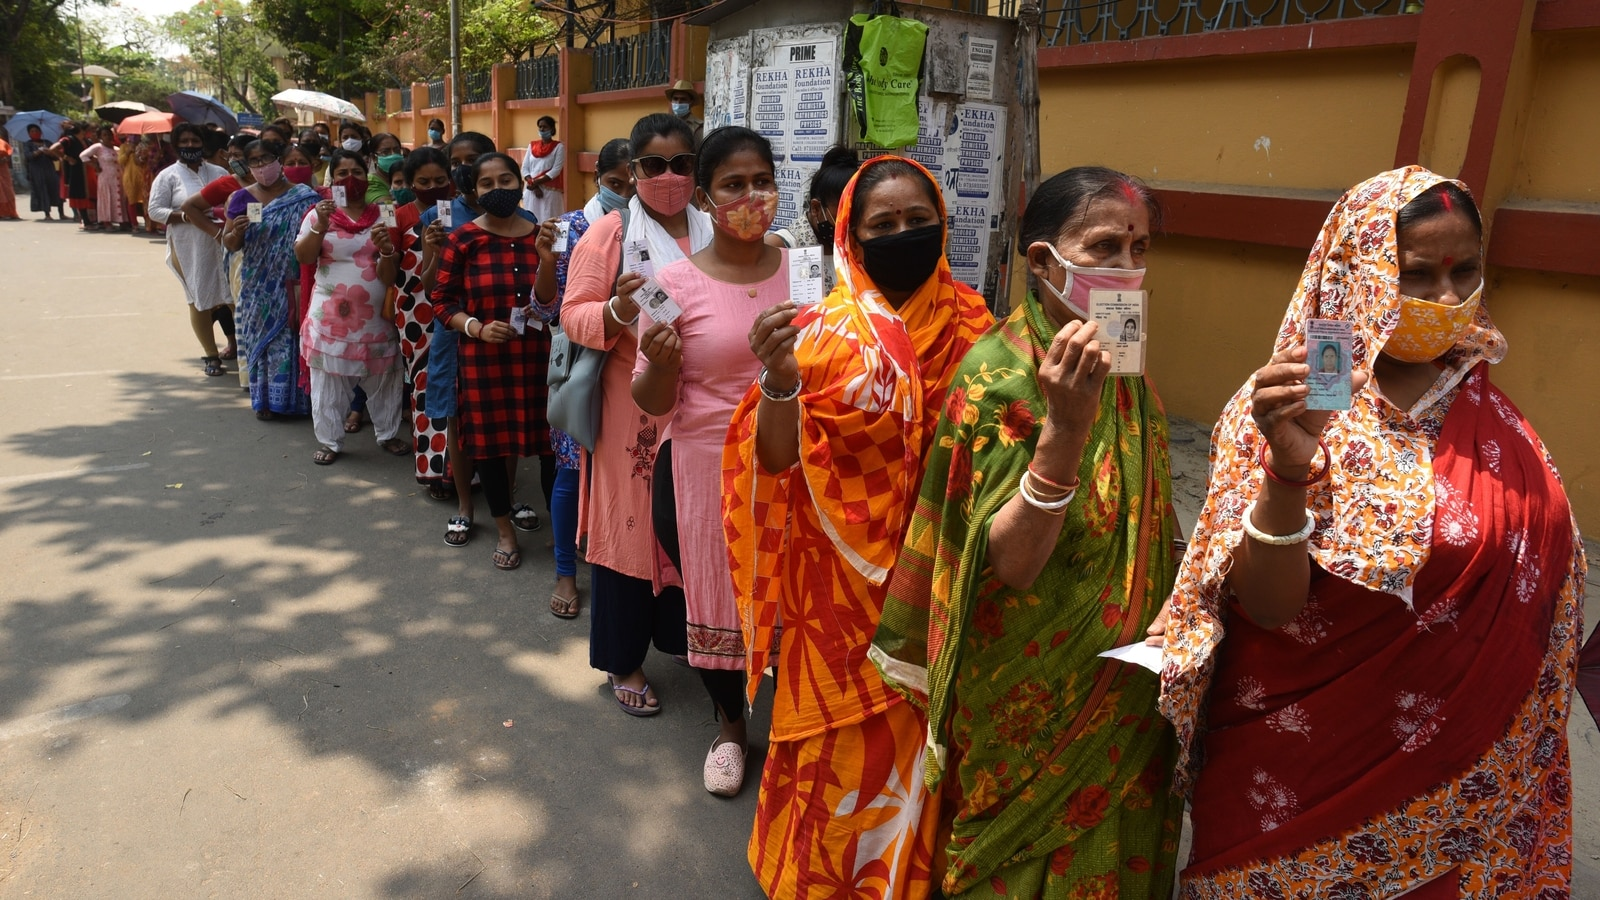 West Bengal 5th phase election concludes with high turnout of women voters - Hindustan Times